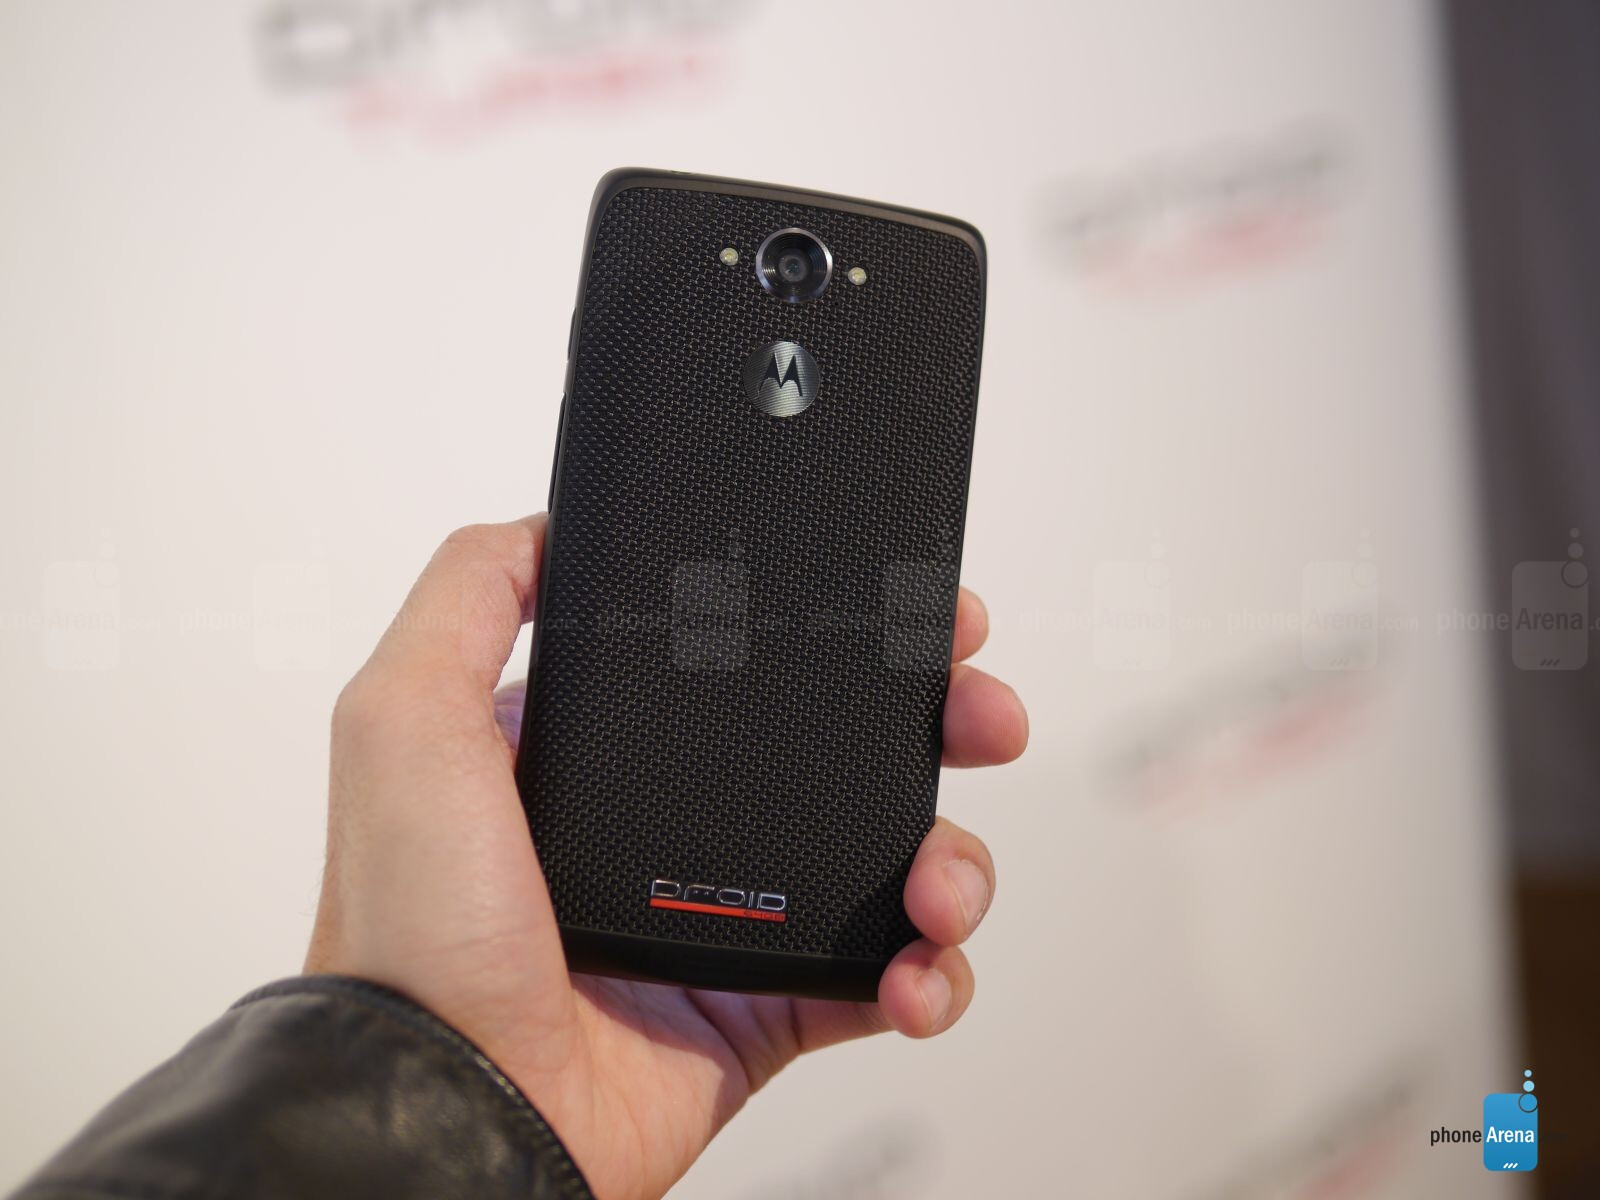 Step aside, Sony Xperia Z3, the Motorola DROID Turbo is ...